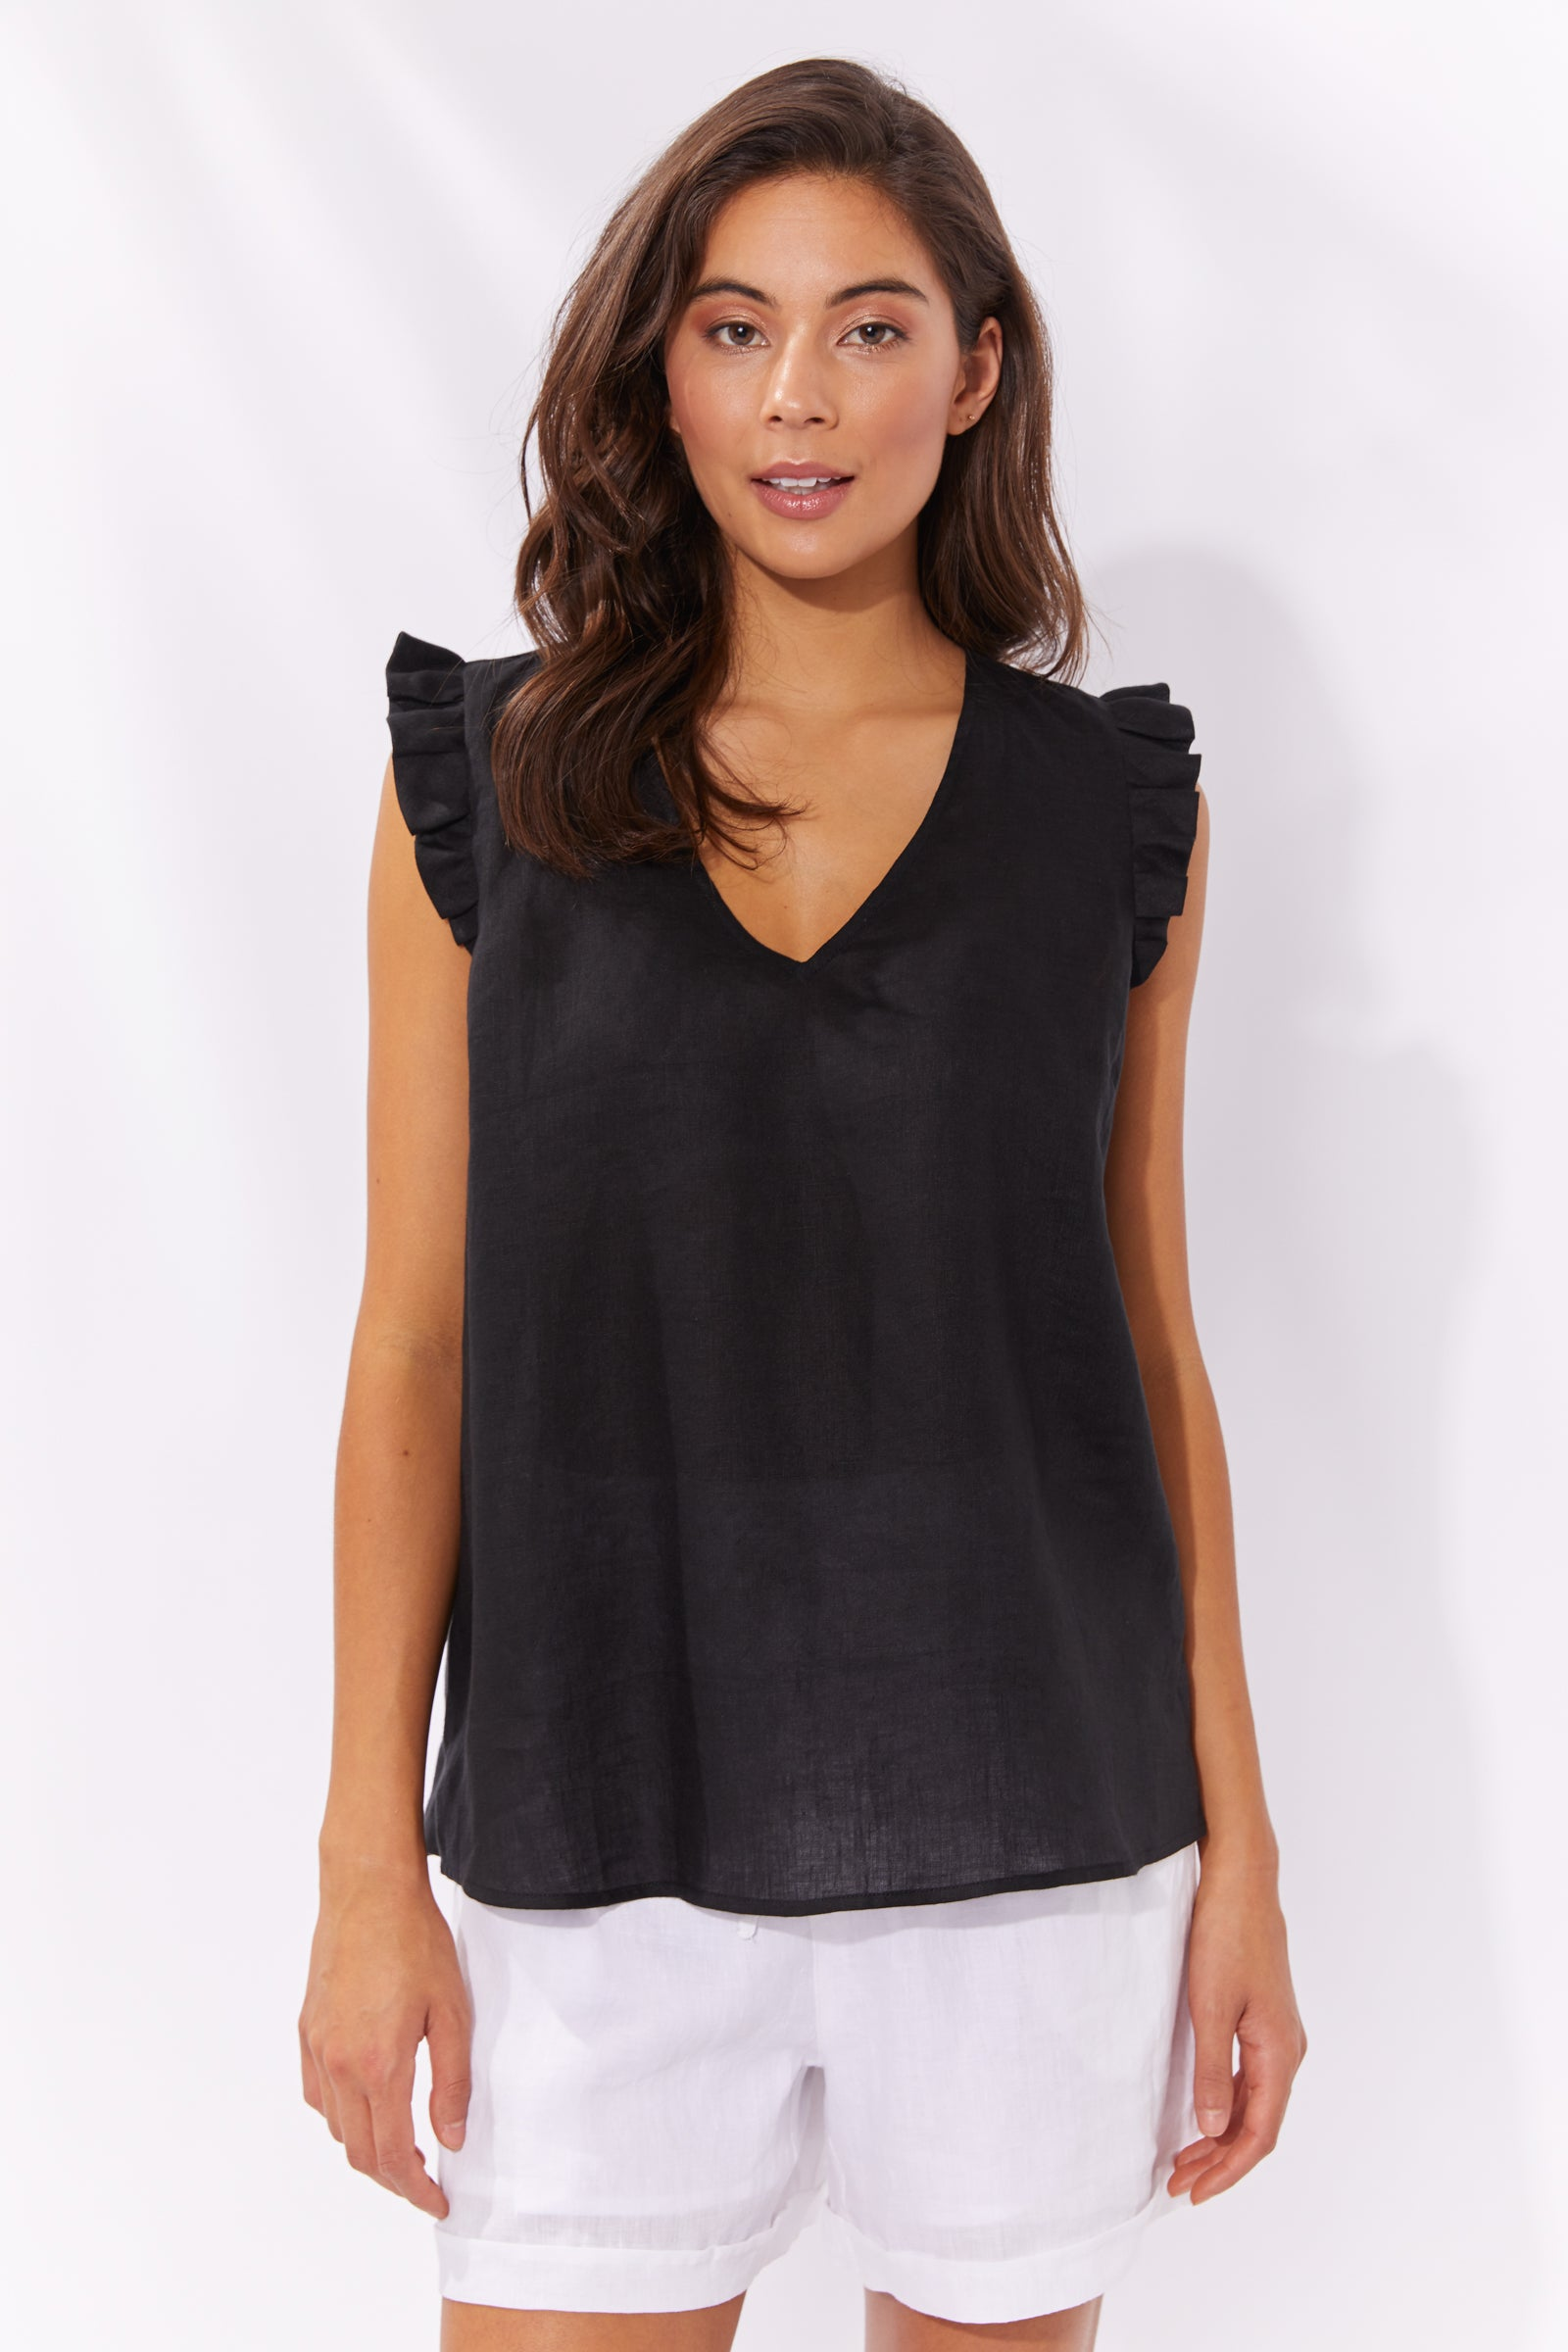 Palma Top - Black - The Haven Co